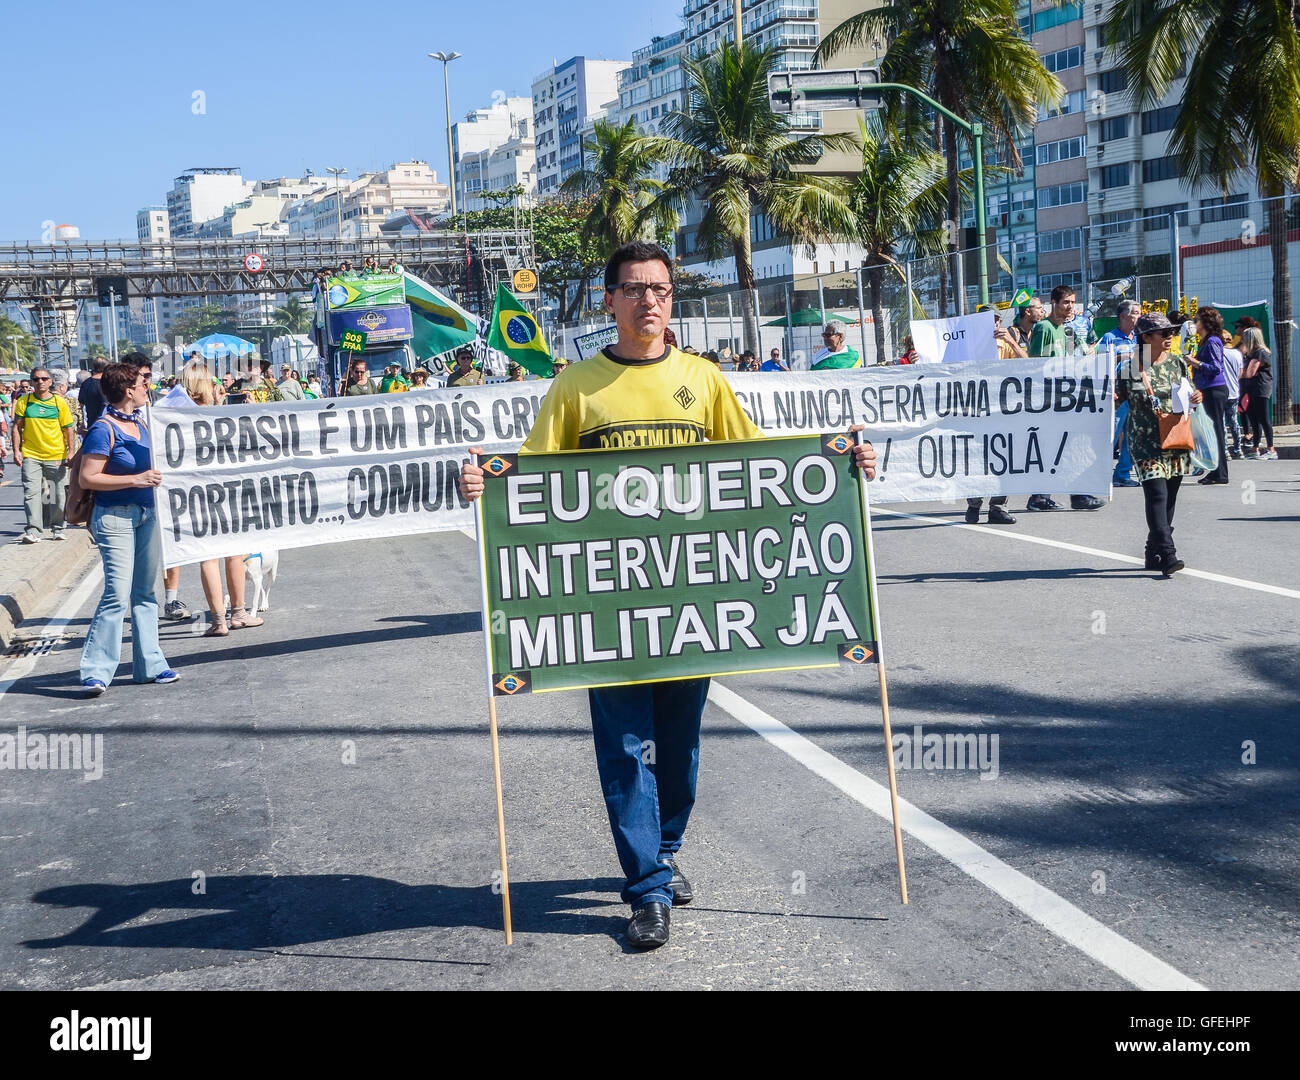 Anti-corruption protestors gather on Copacabana beach to vent their frustration at the current political situation - Stock Image